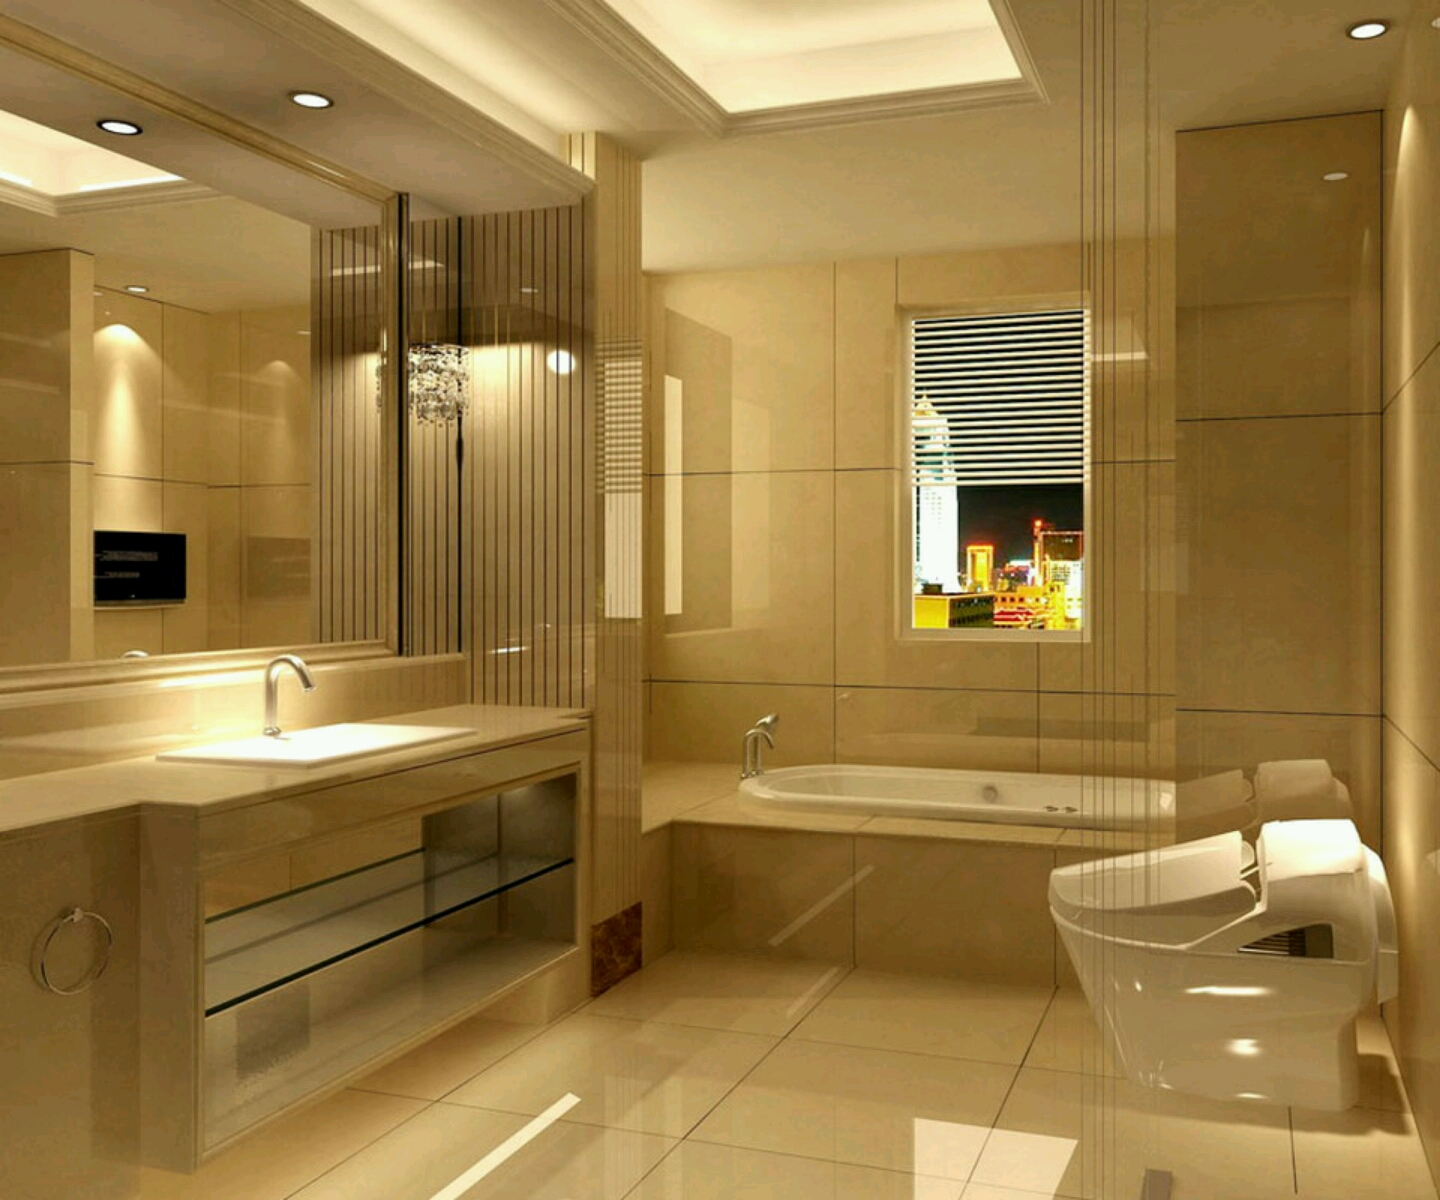 Modern bathrooms setting ideas furniture gallery for Modern small bathroom designs 2013